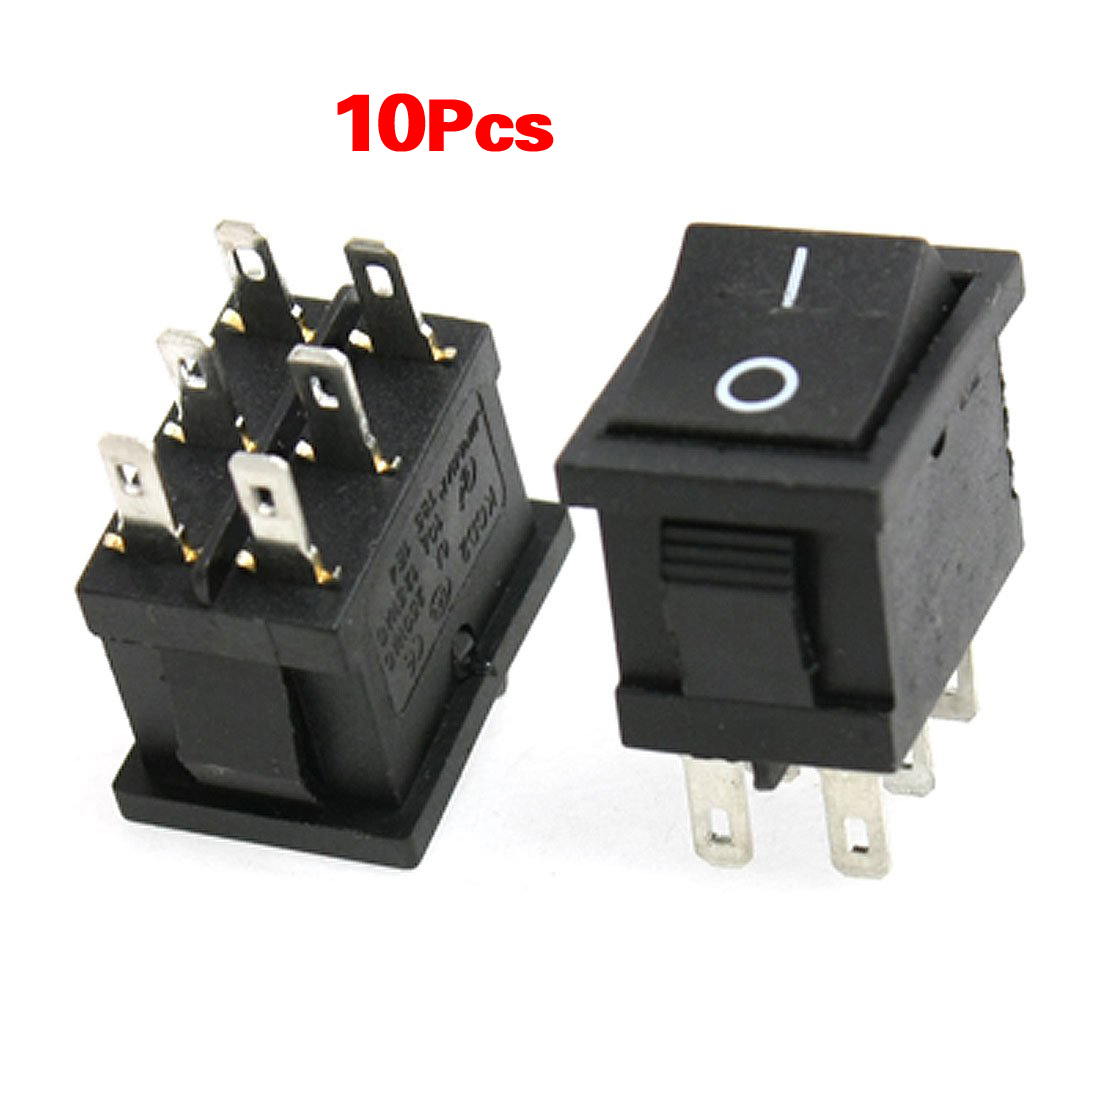 Promotion! 10pcs AC 6A/250V 10A/125V 6 Pin DPDT ON/ON 2 Position Snap In Boat Rocker Switch 5 pieces lot ac 6a 250v 10a 125v 5x 6pin dpdt on off on position snap boat rocker switches